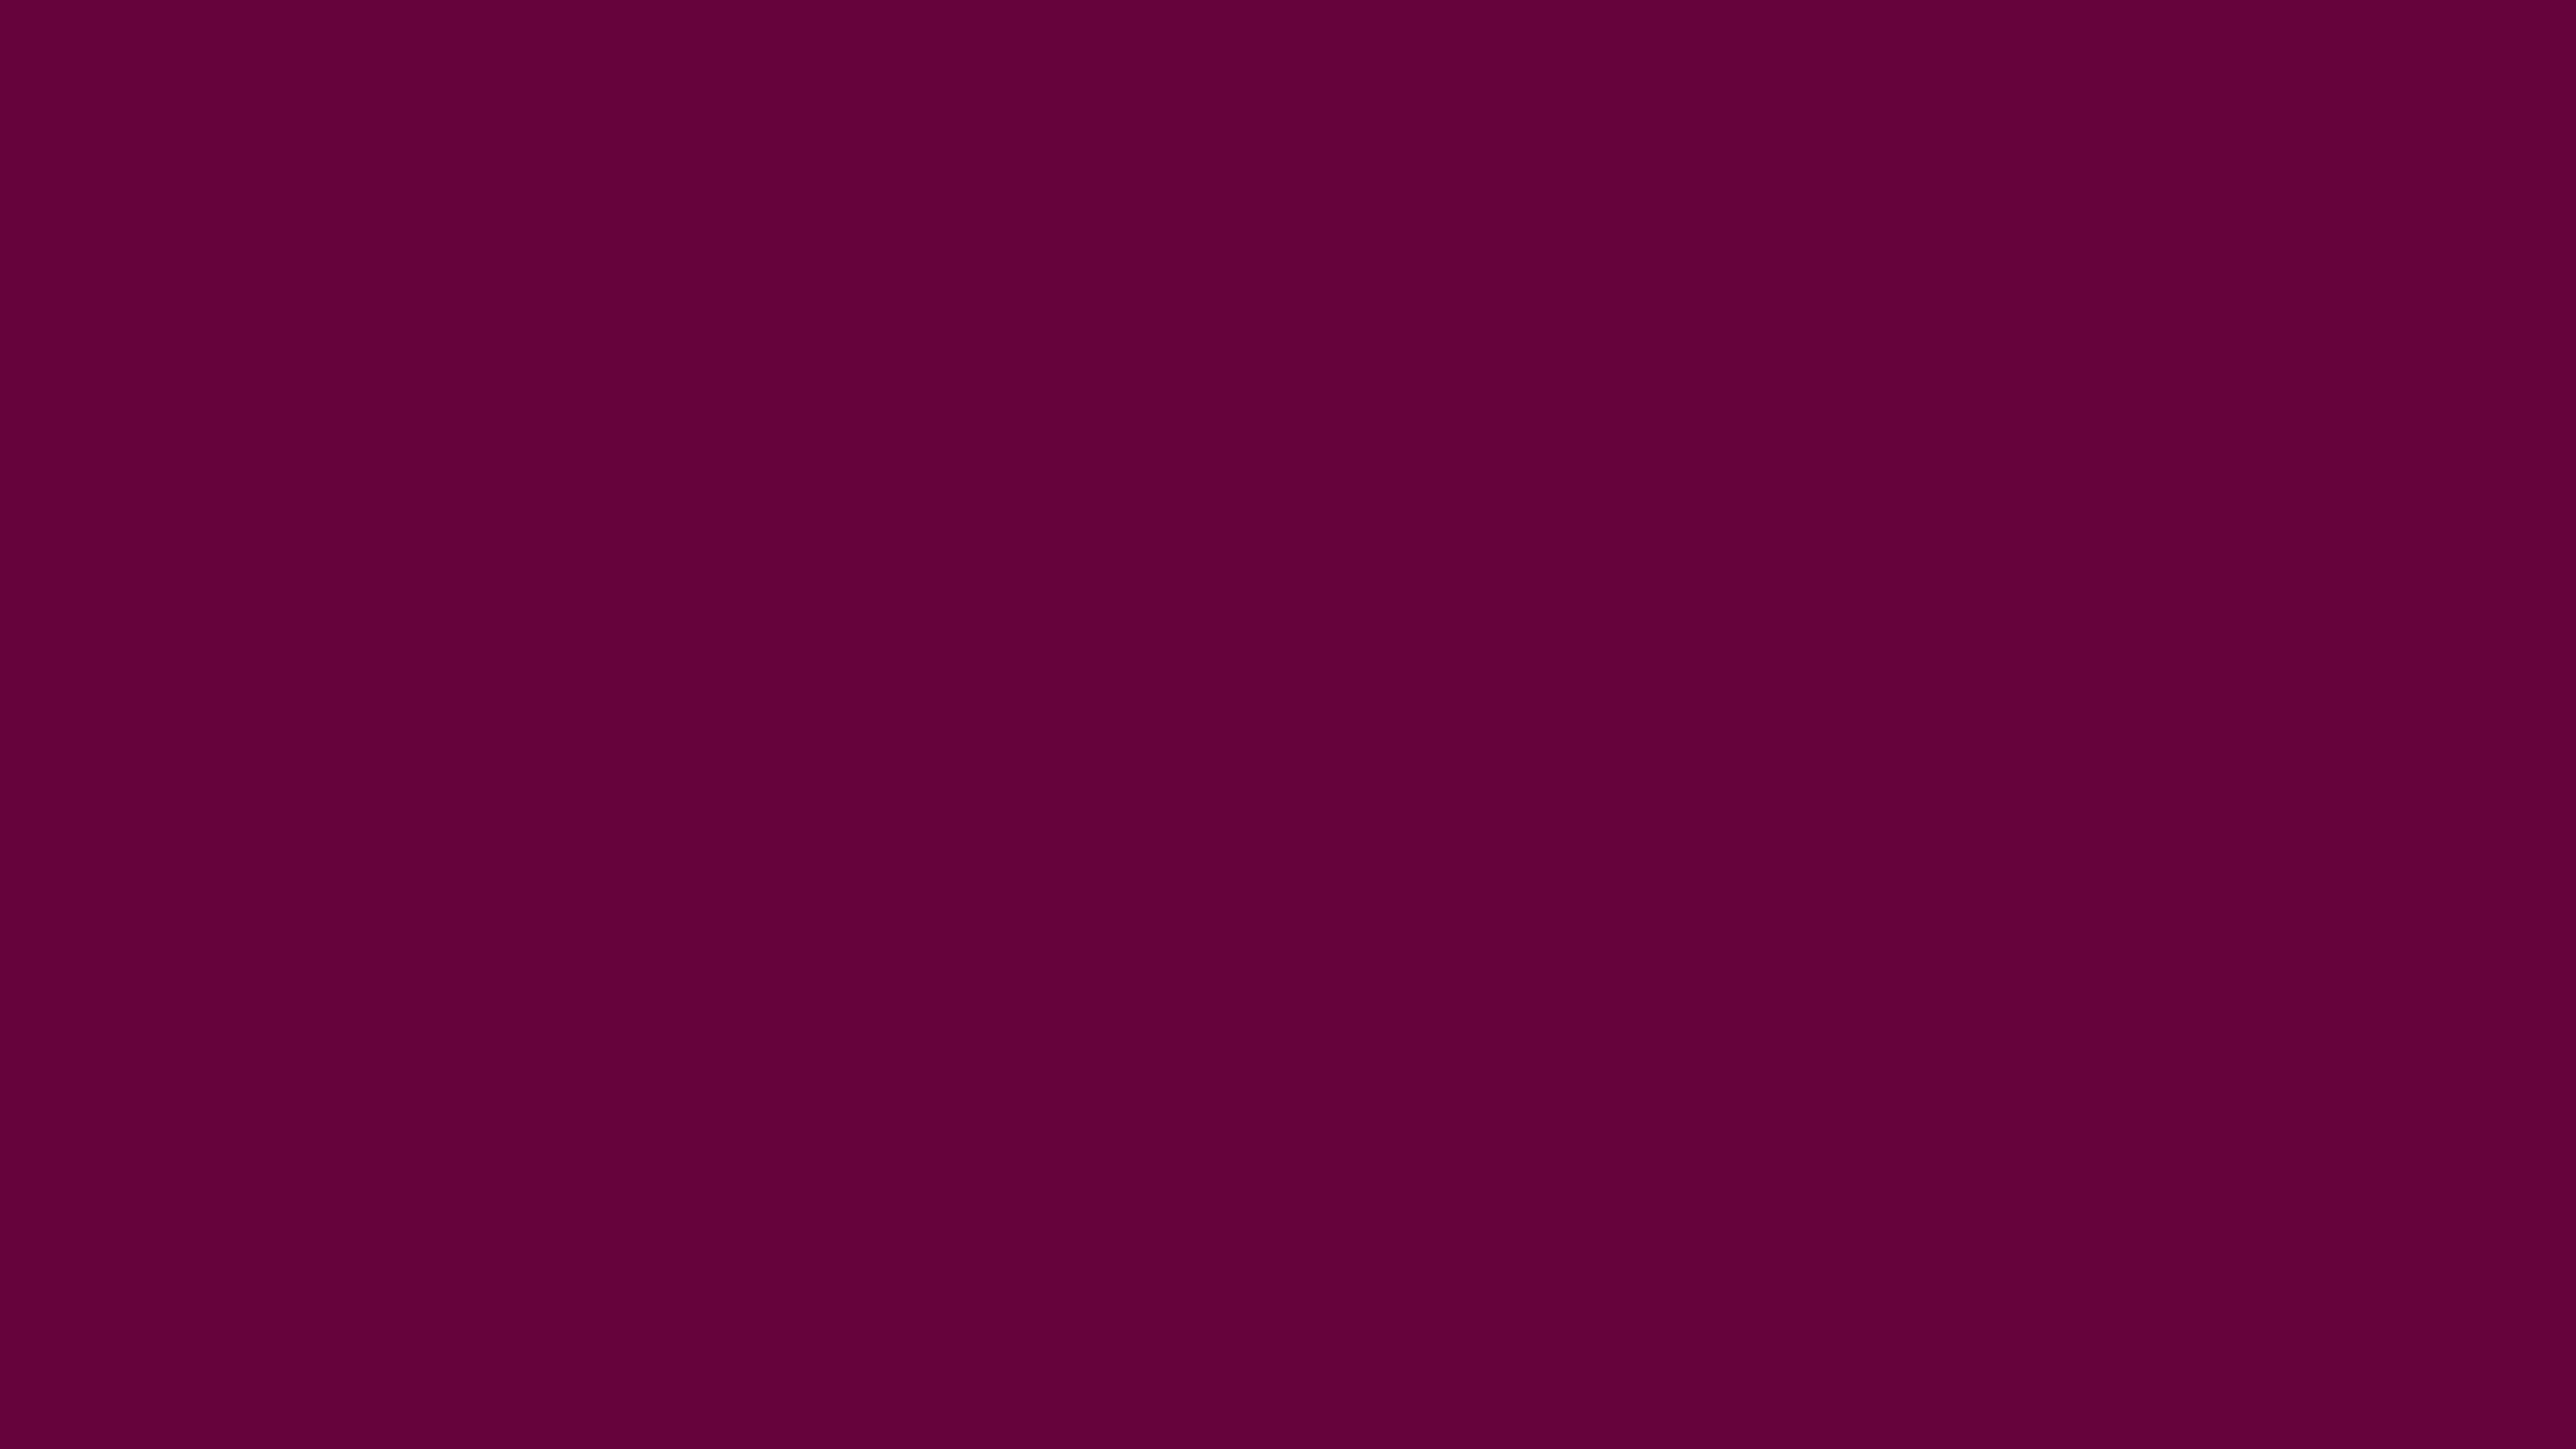 7680x4320 Imperial Purple Solid Color Background